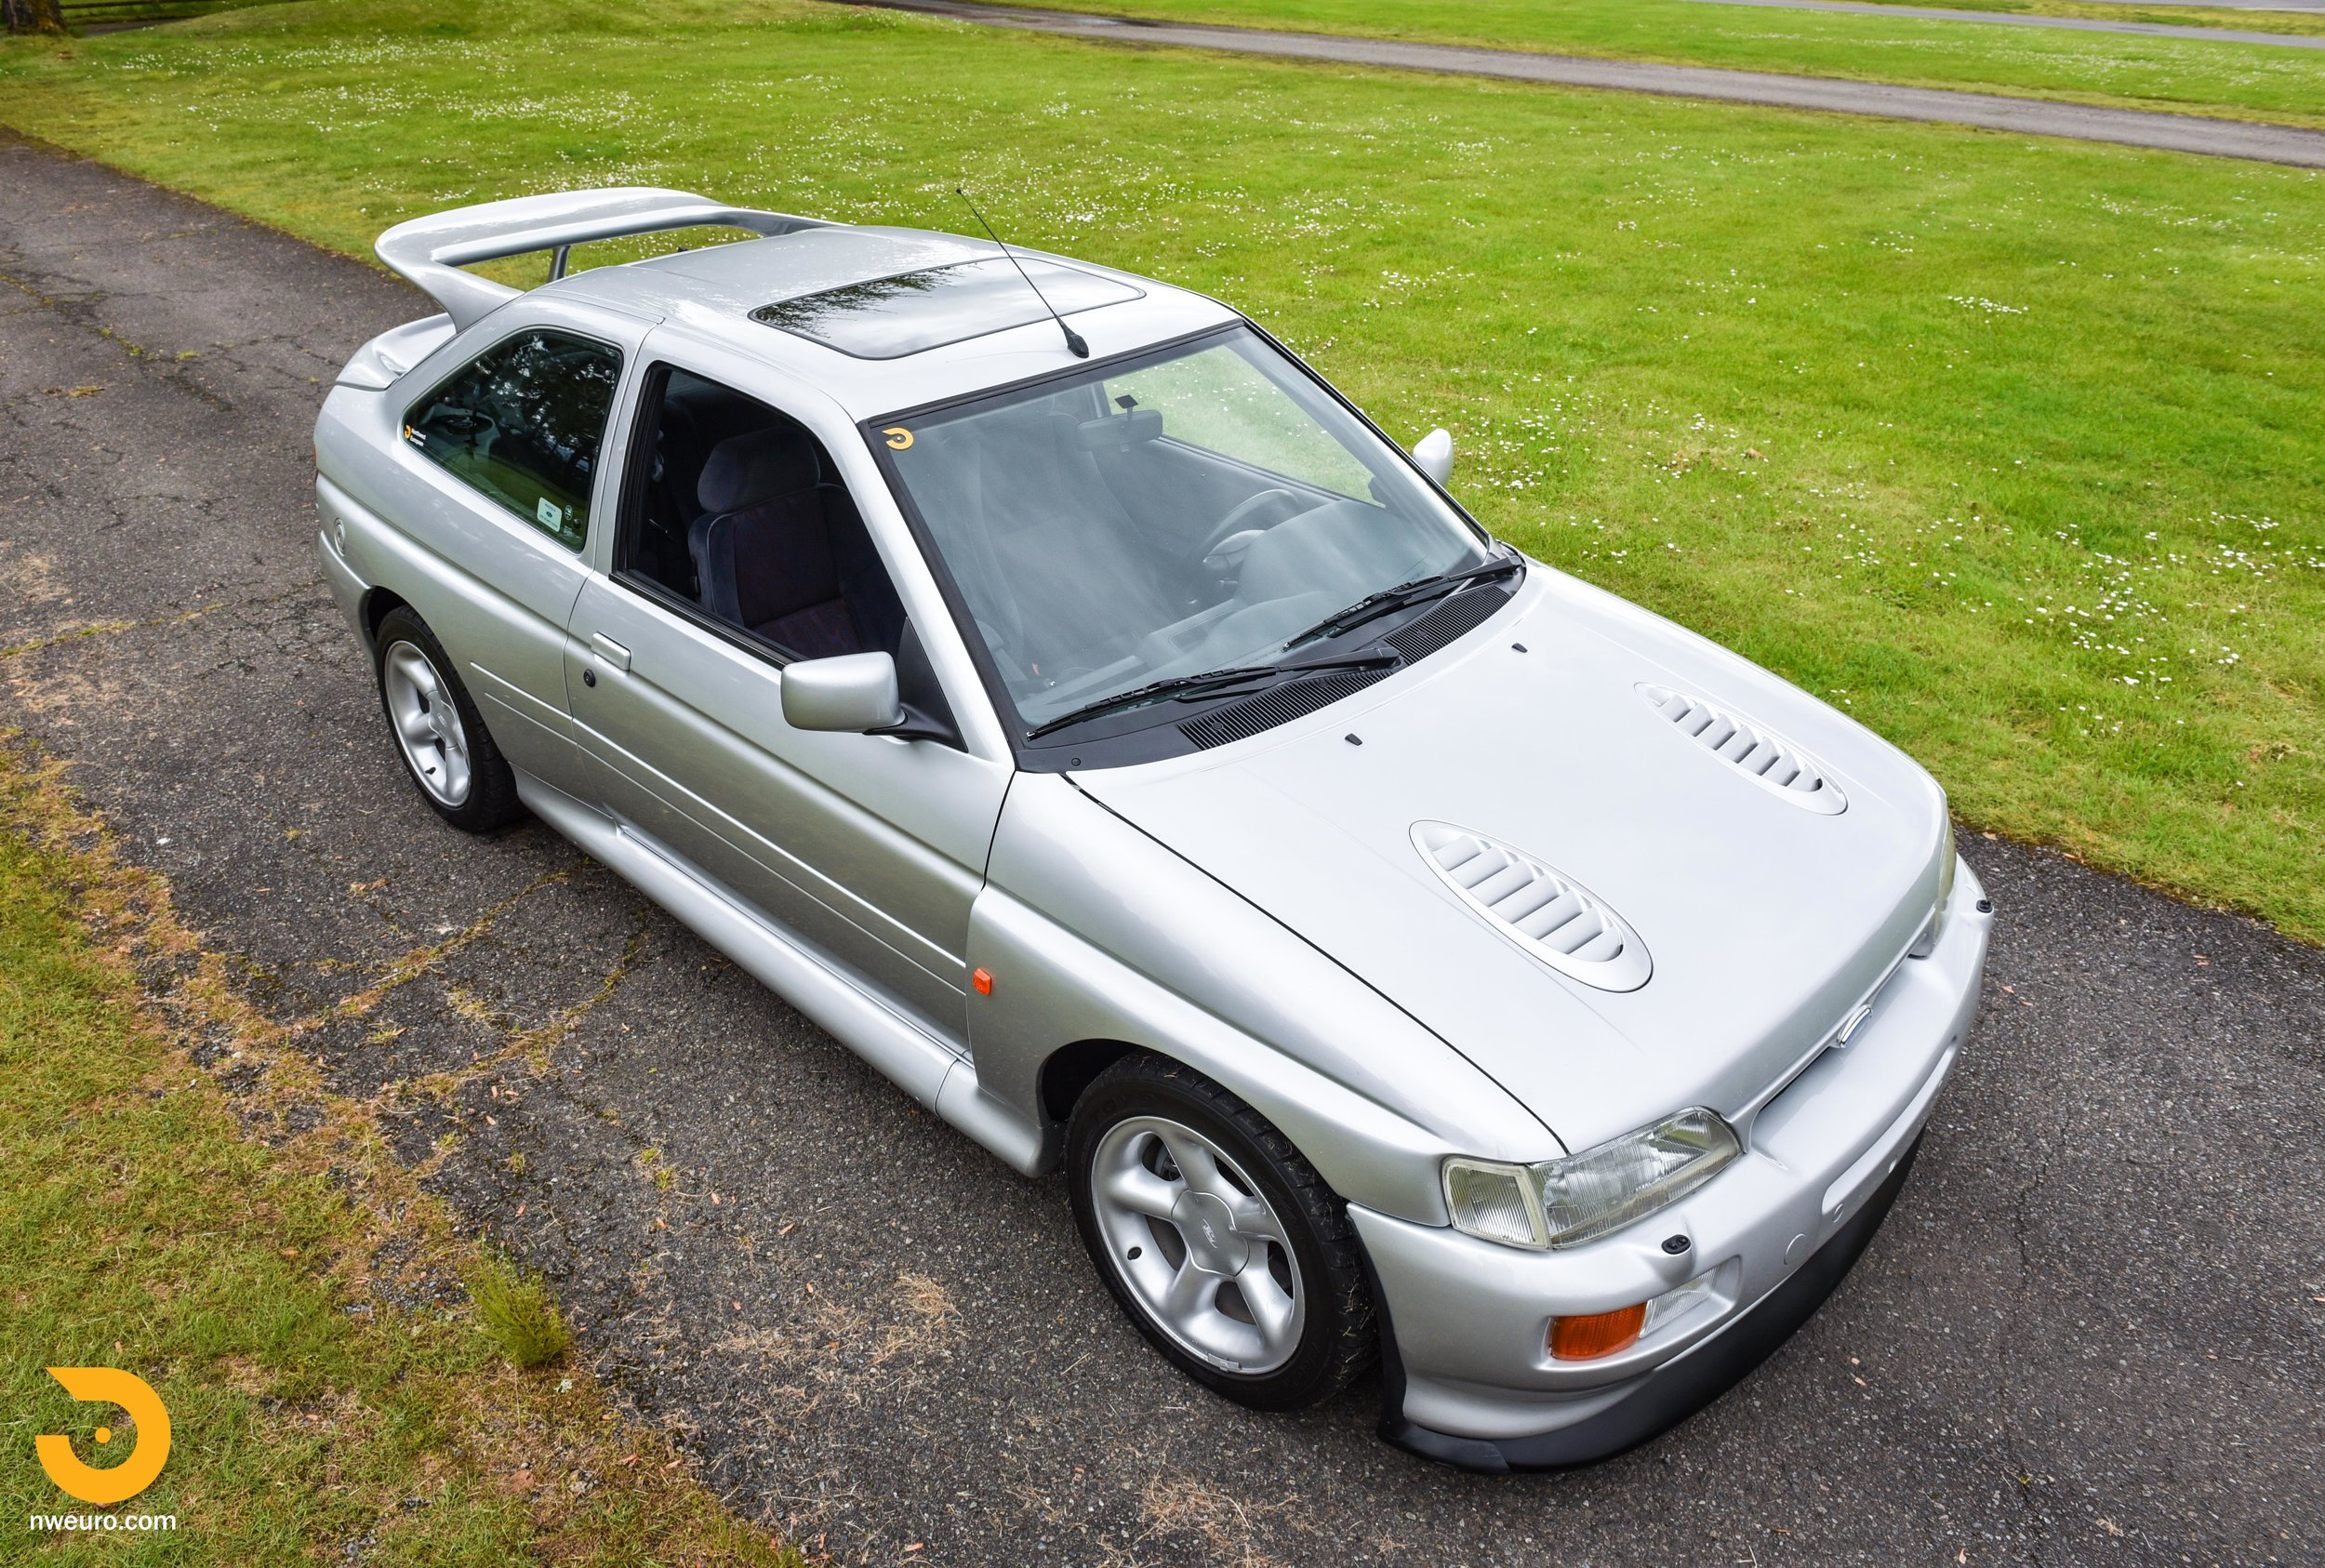 1995 Ford Escort Cosworth RS Silver-64.jpg